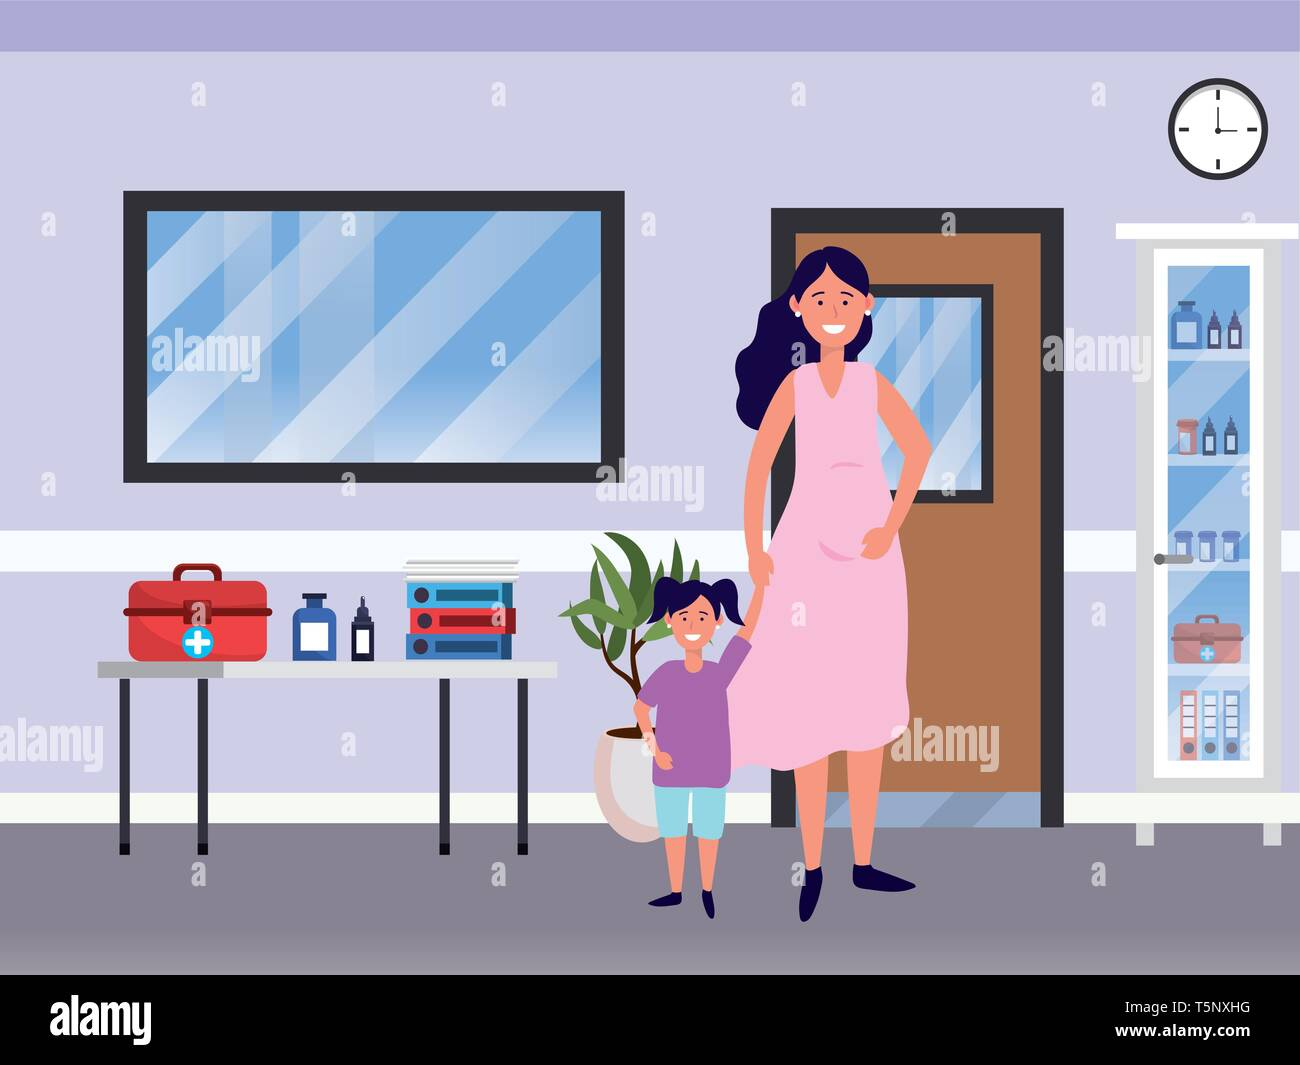 Family Baby Care Mom Woman With Child At Medical Hospital Room Cartoon Vector Illustration Graphic Design Stock Vector Image Art Alamy